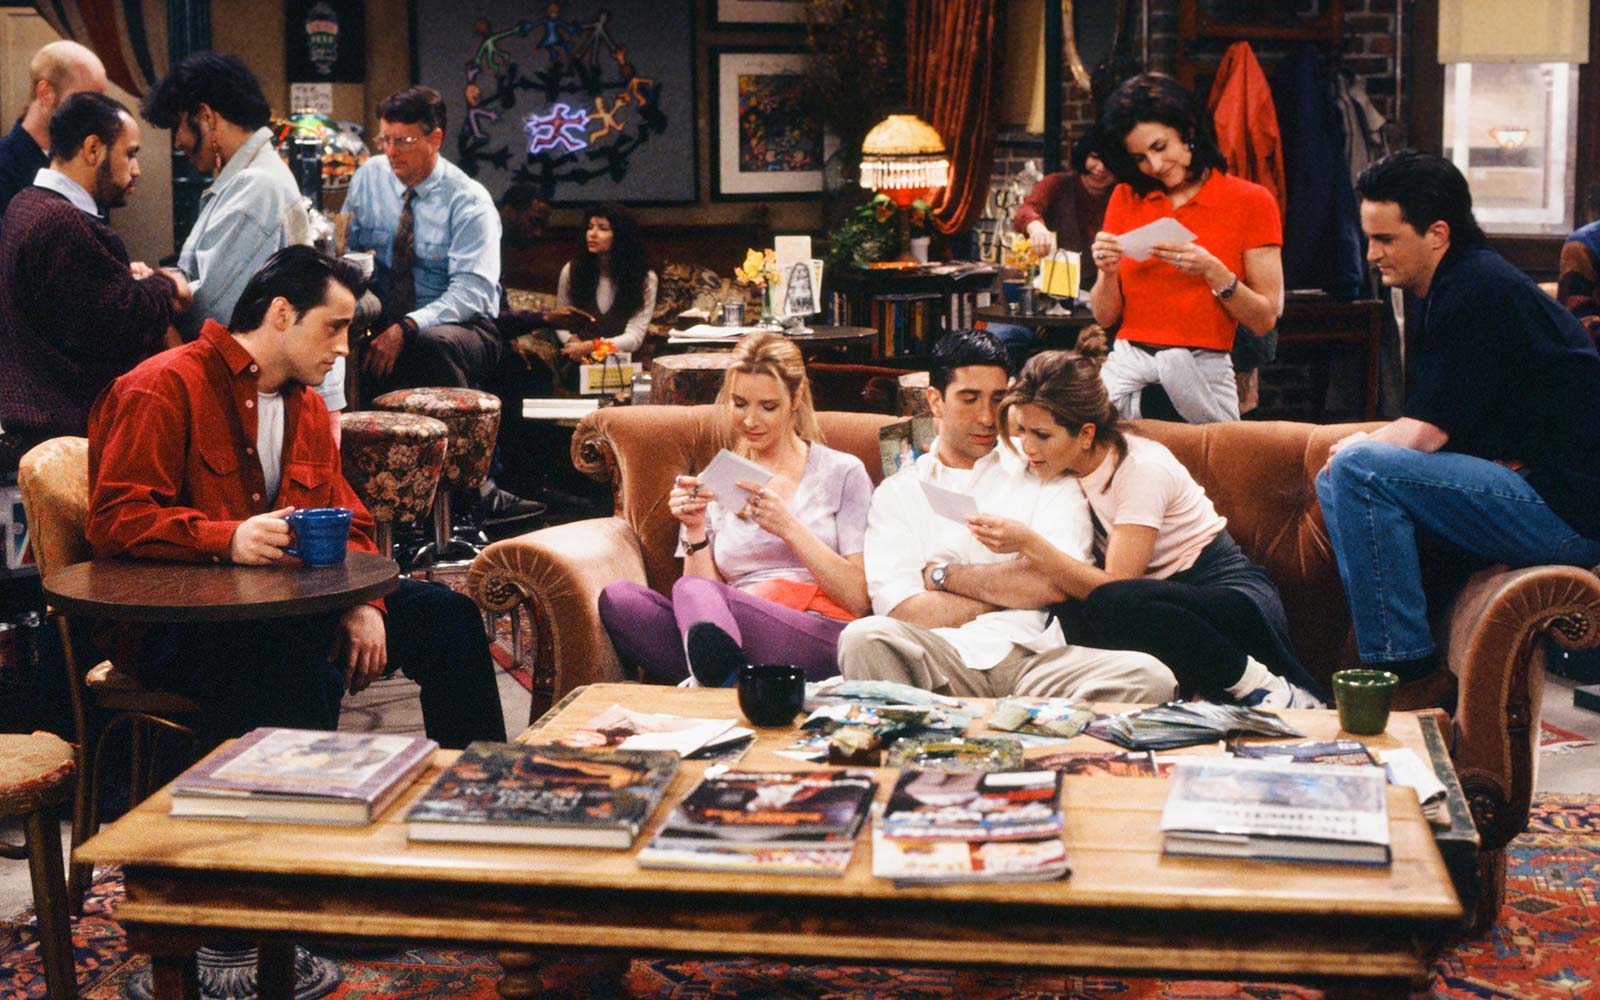 This Cafe Across From the 'Friends' Apartment Is the Real-life Central Perk